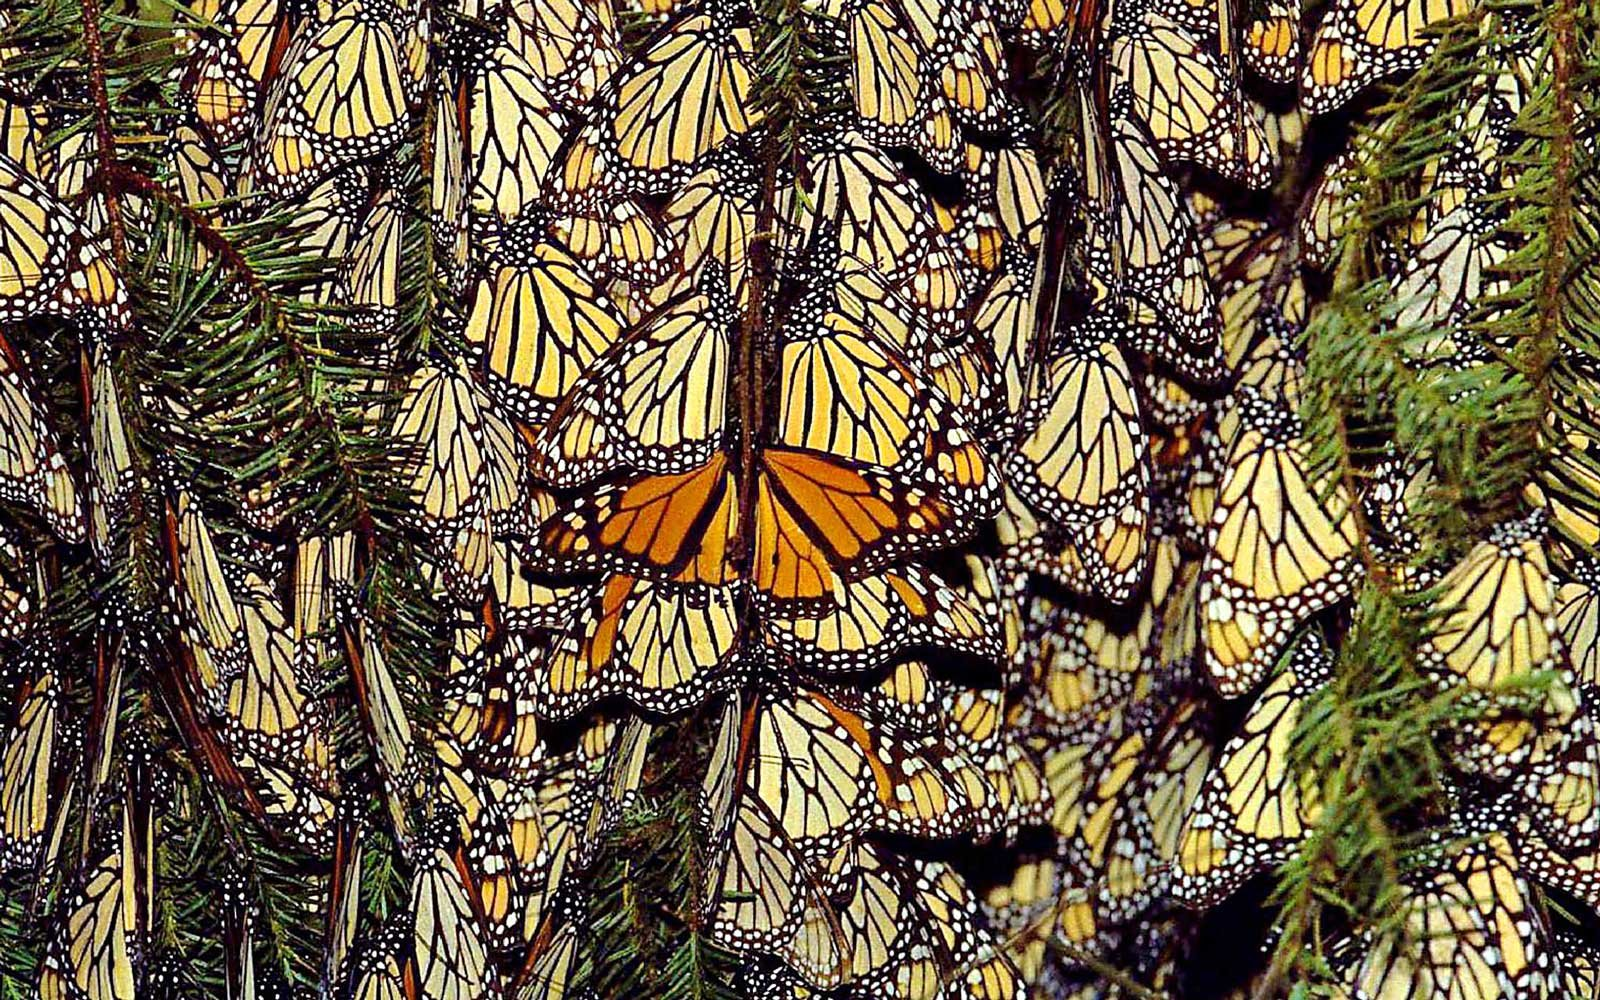 Monarch butterflies in Valle de Bravo, Mexico